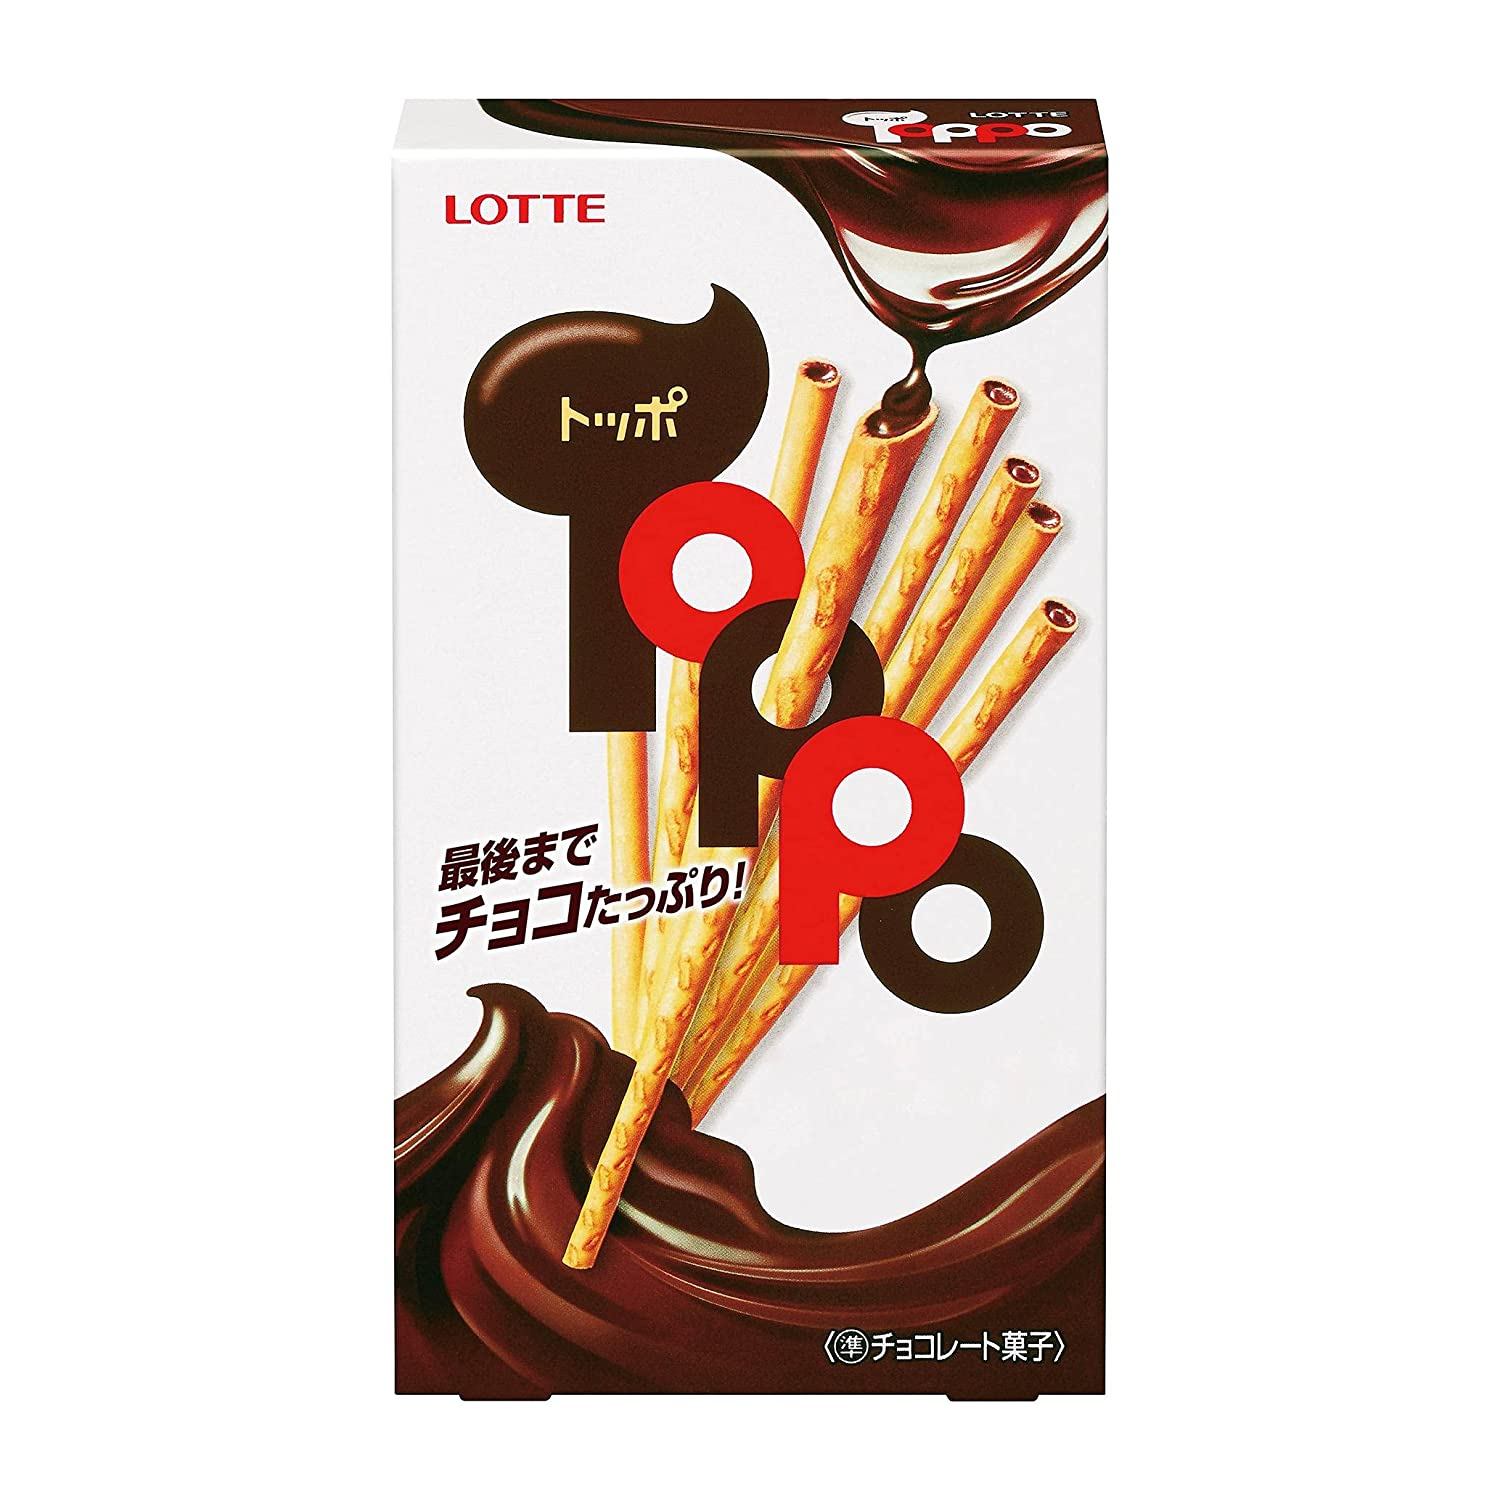 Lotte Toppo 2 Limited time for free shipping boxes Award-winning store X10 bags